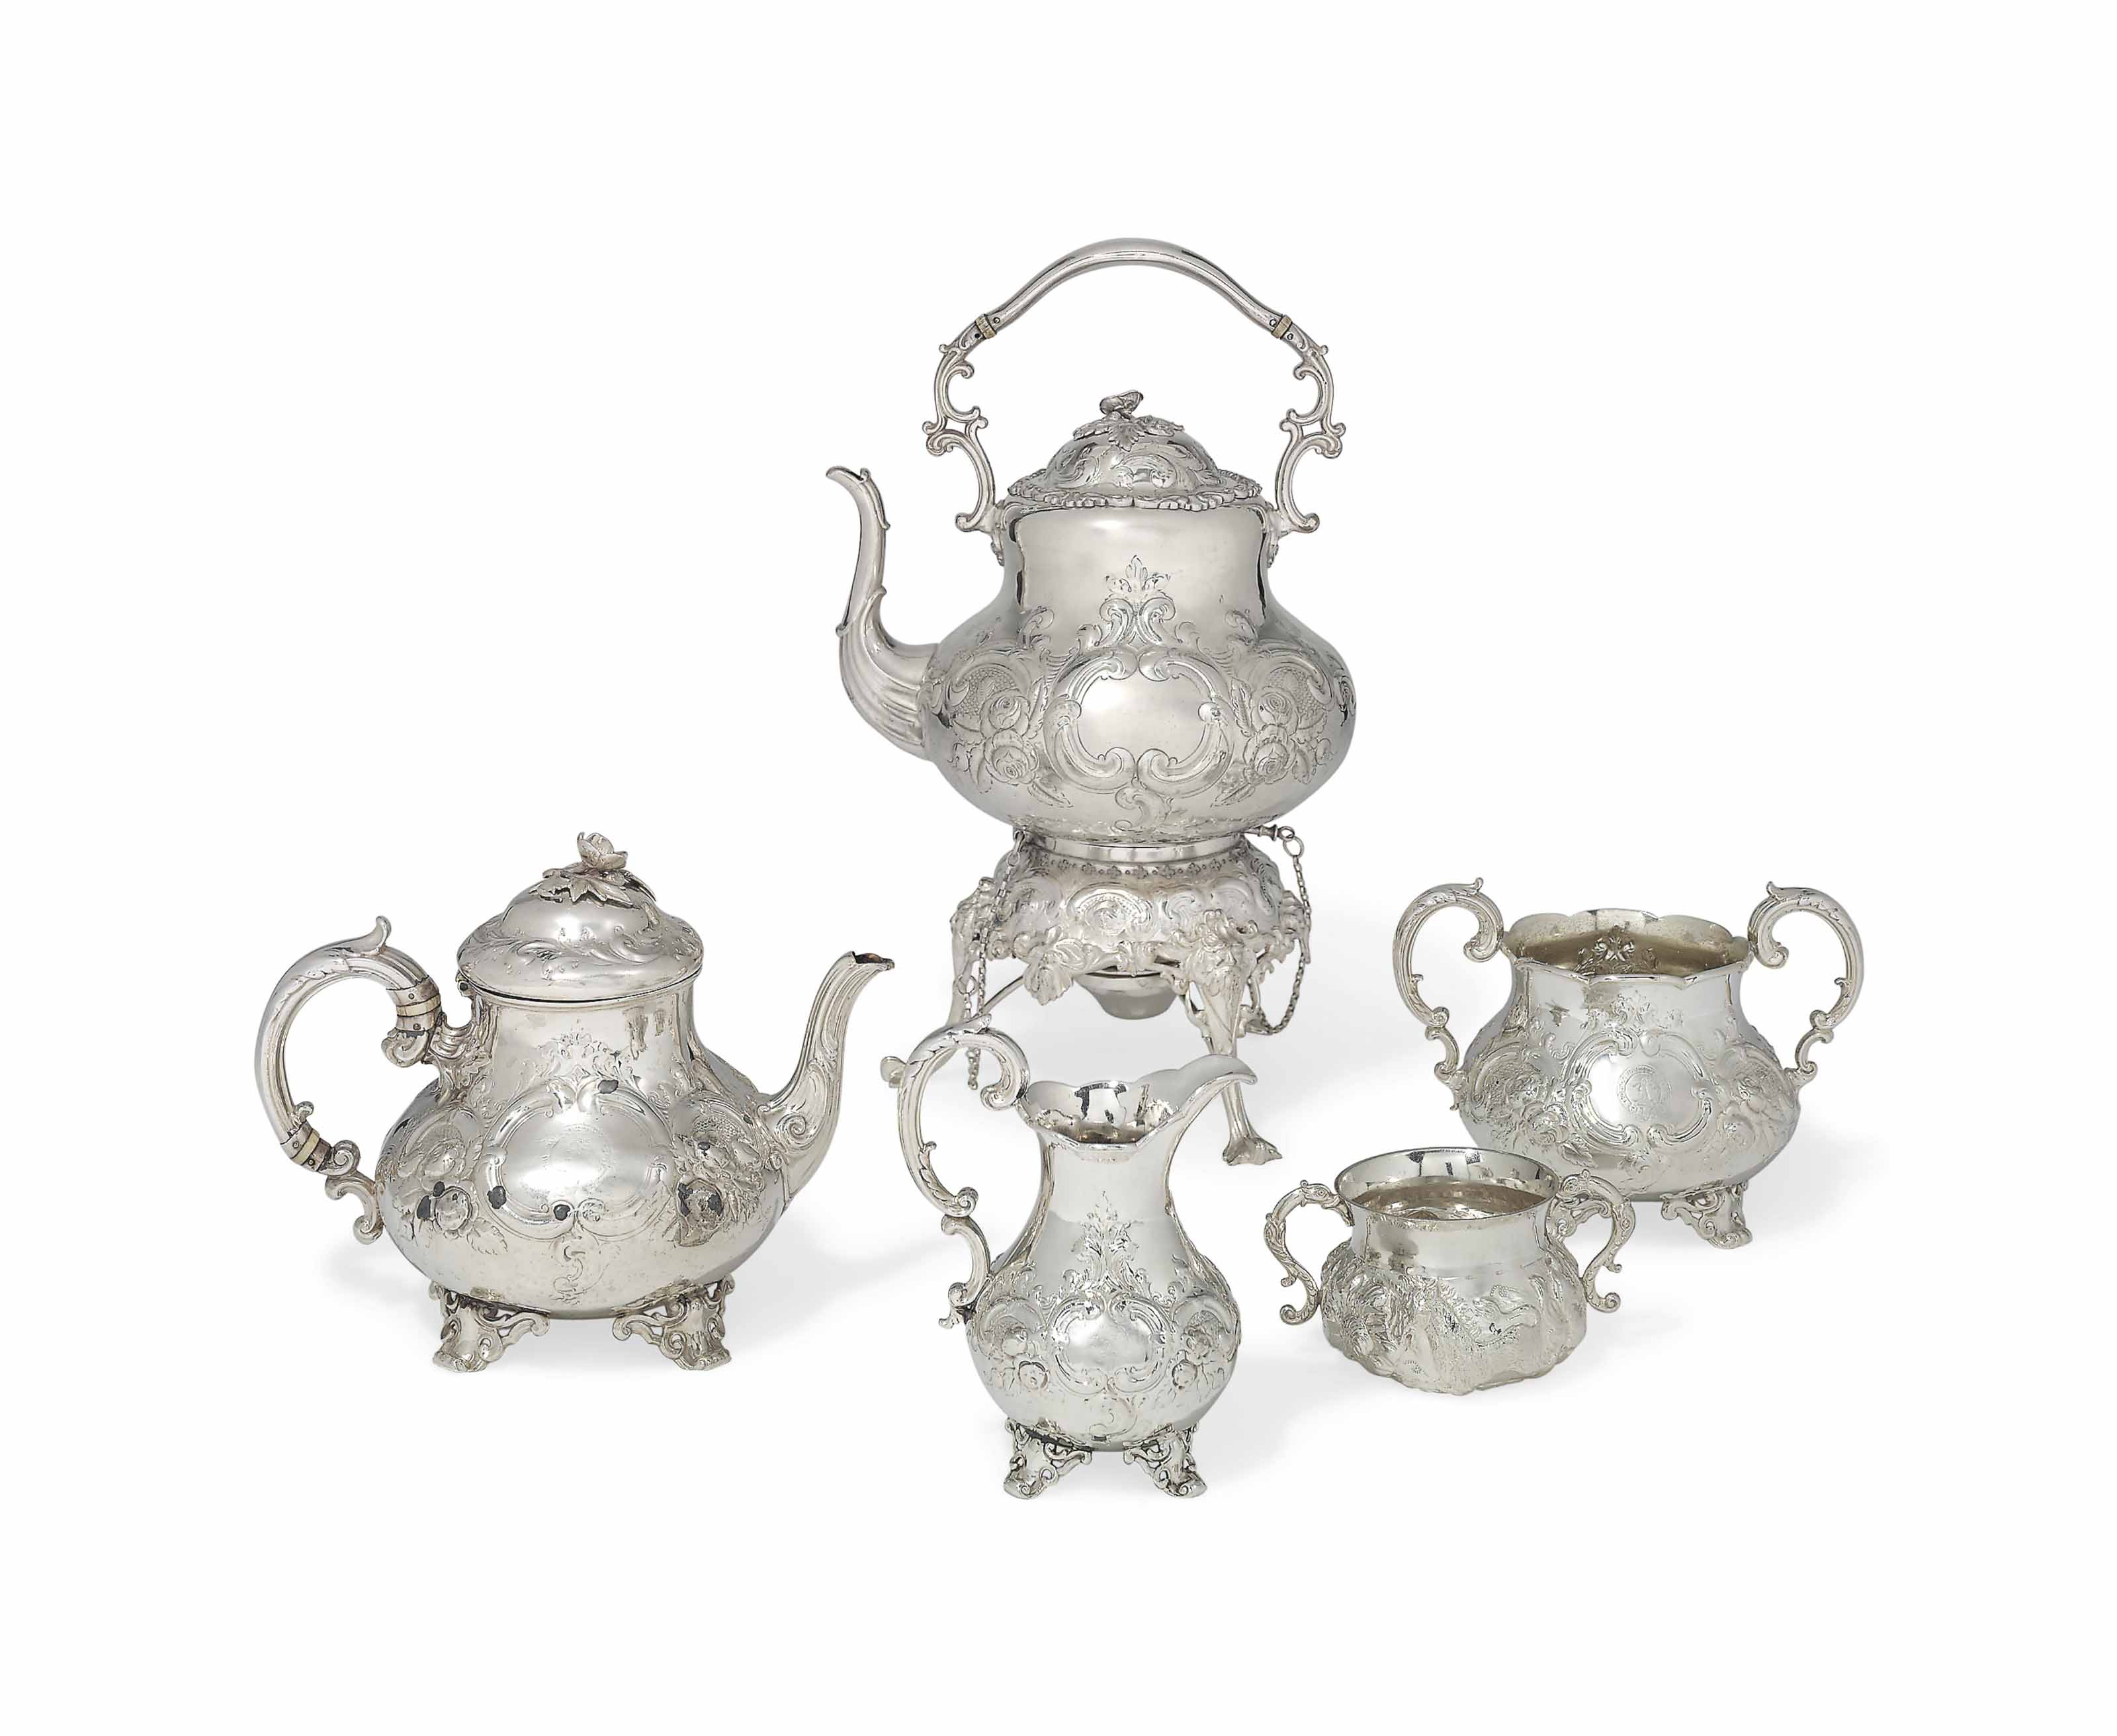 A VICTORIAN THREE-PIECE SILVER TEA-SET WITH AN ELECTROPLATED KETTLE AND STAND EN SUITE